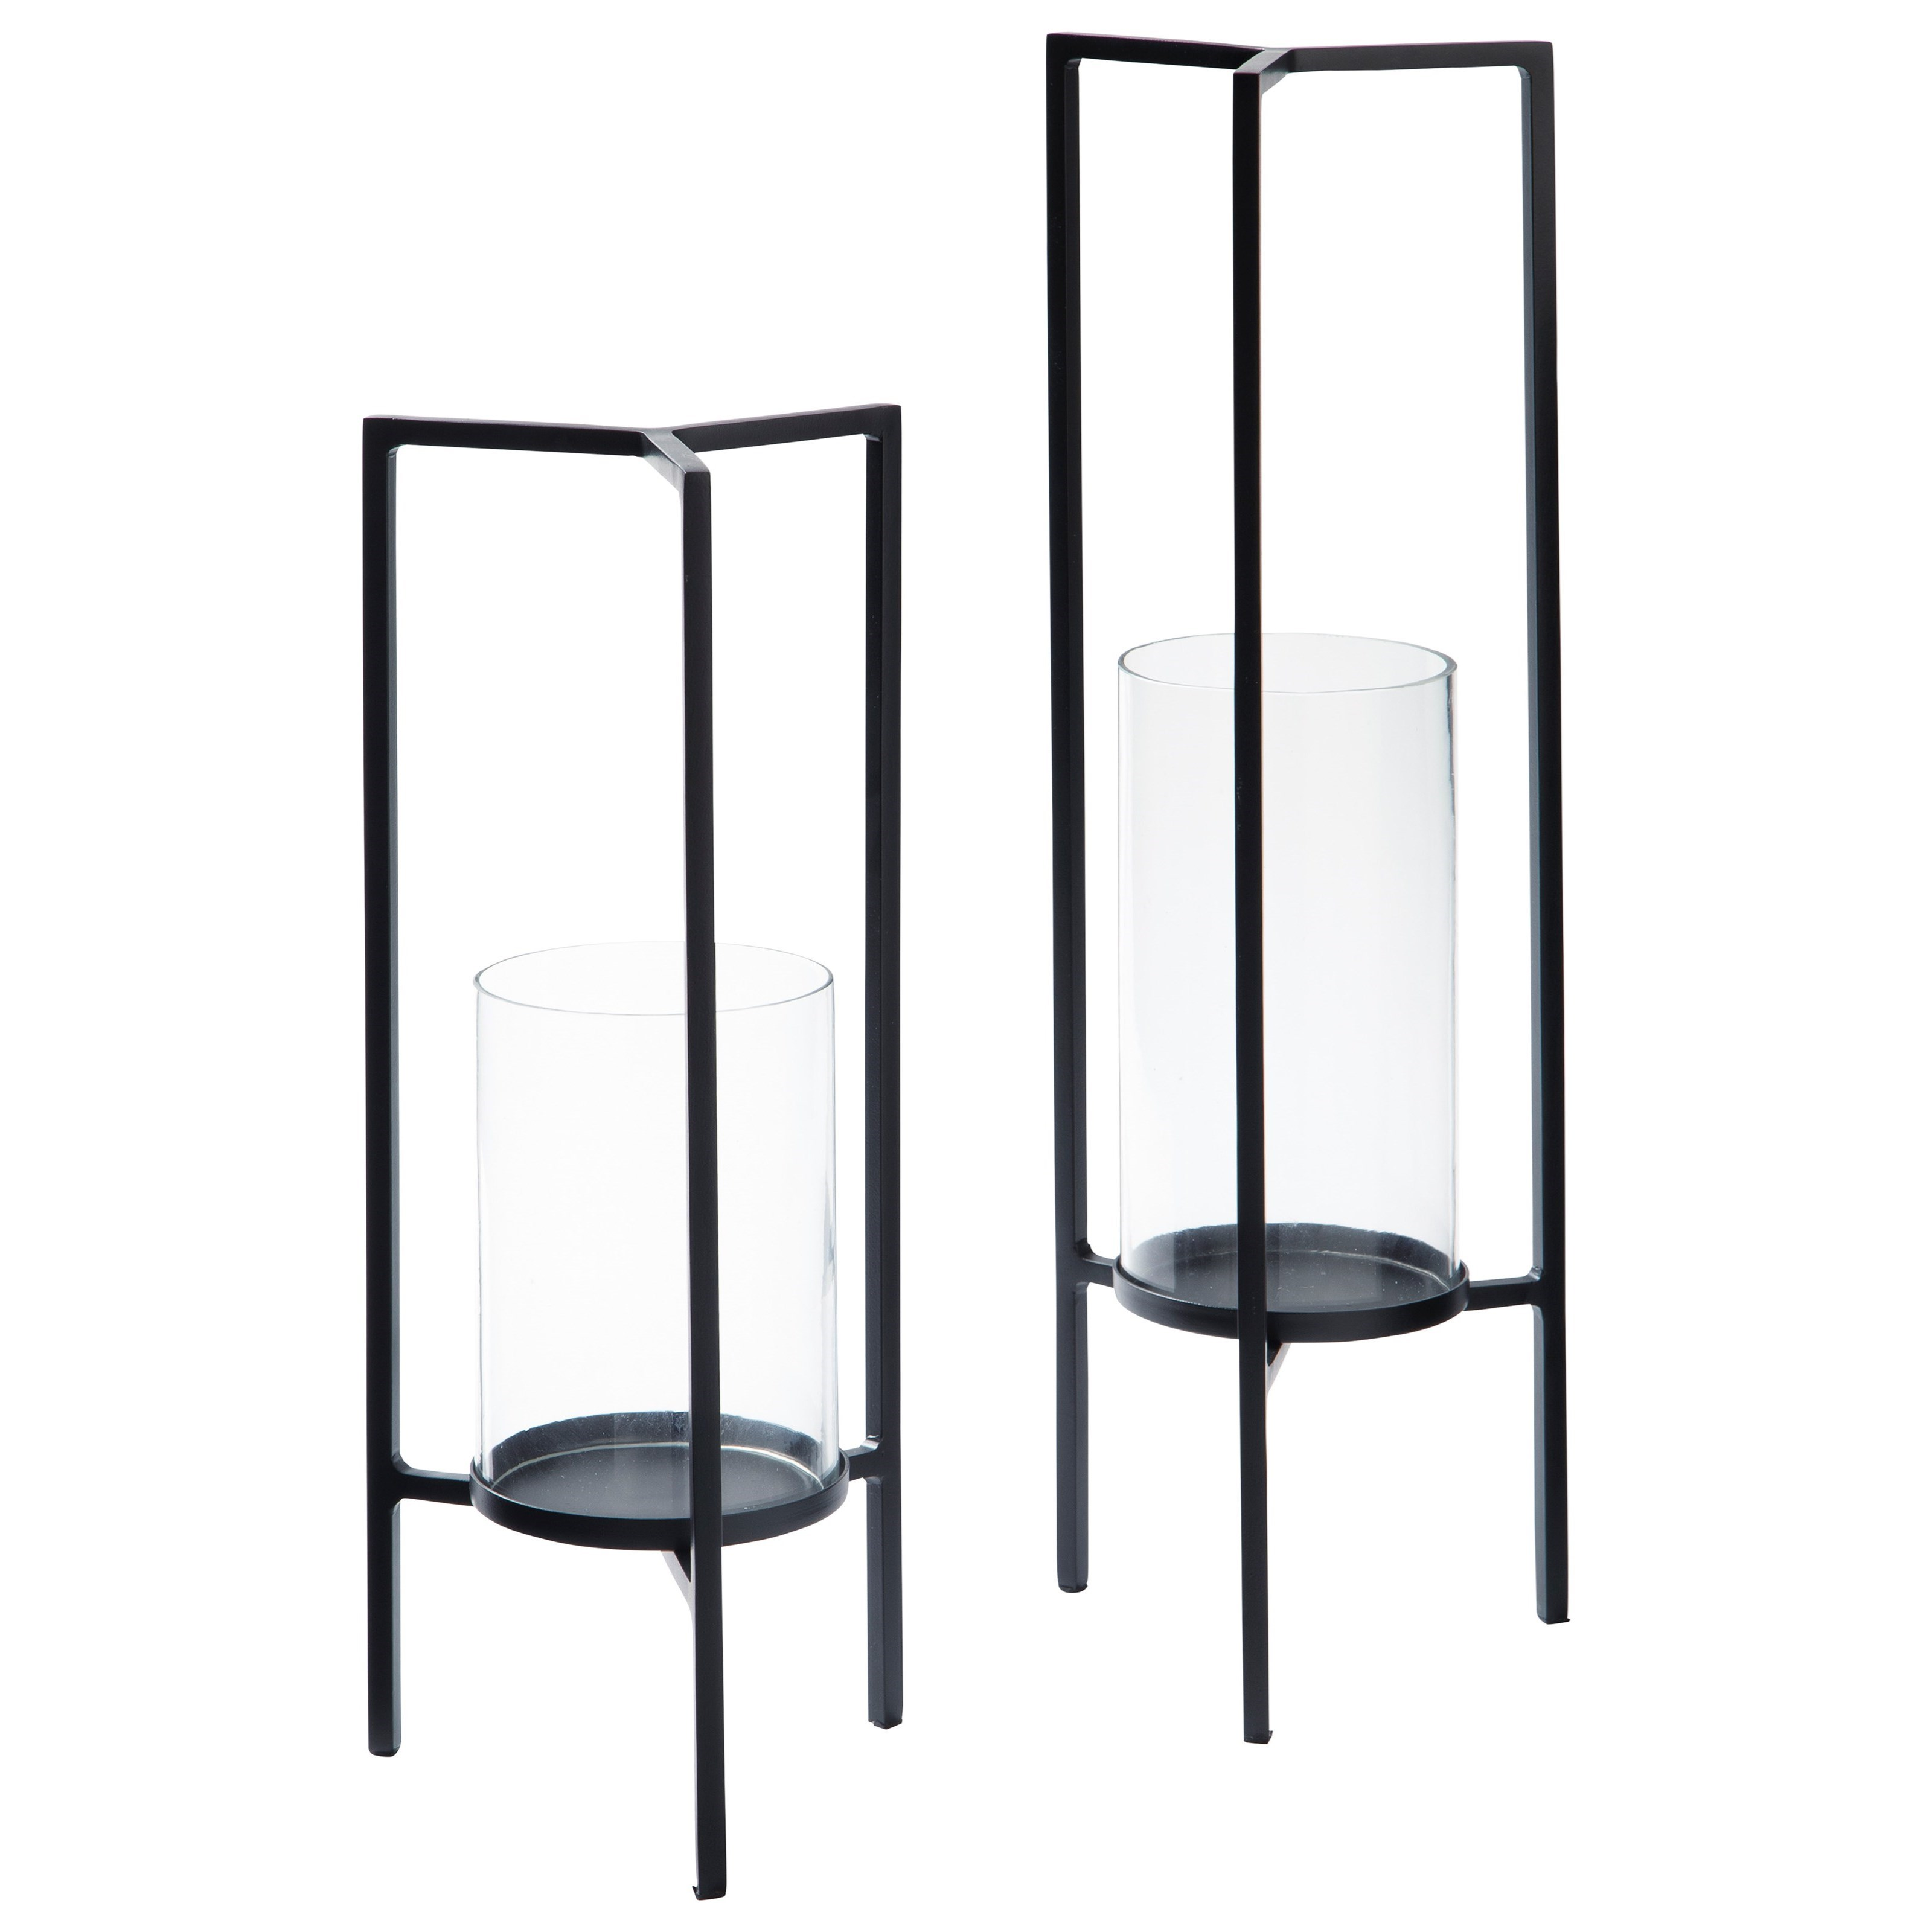 Accents Ginette Candle Holder (Set of 2) at Van Hill Furniture